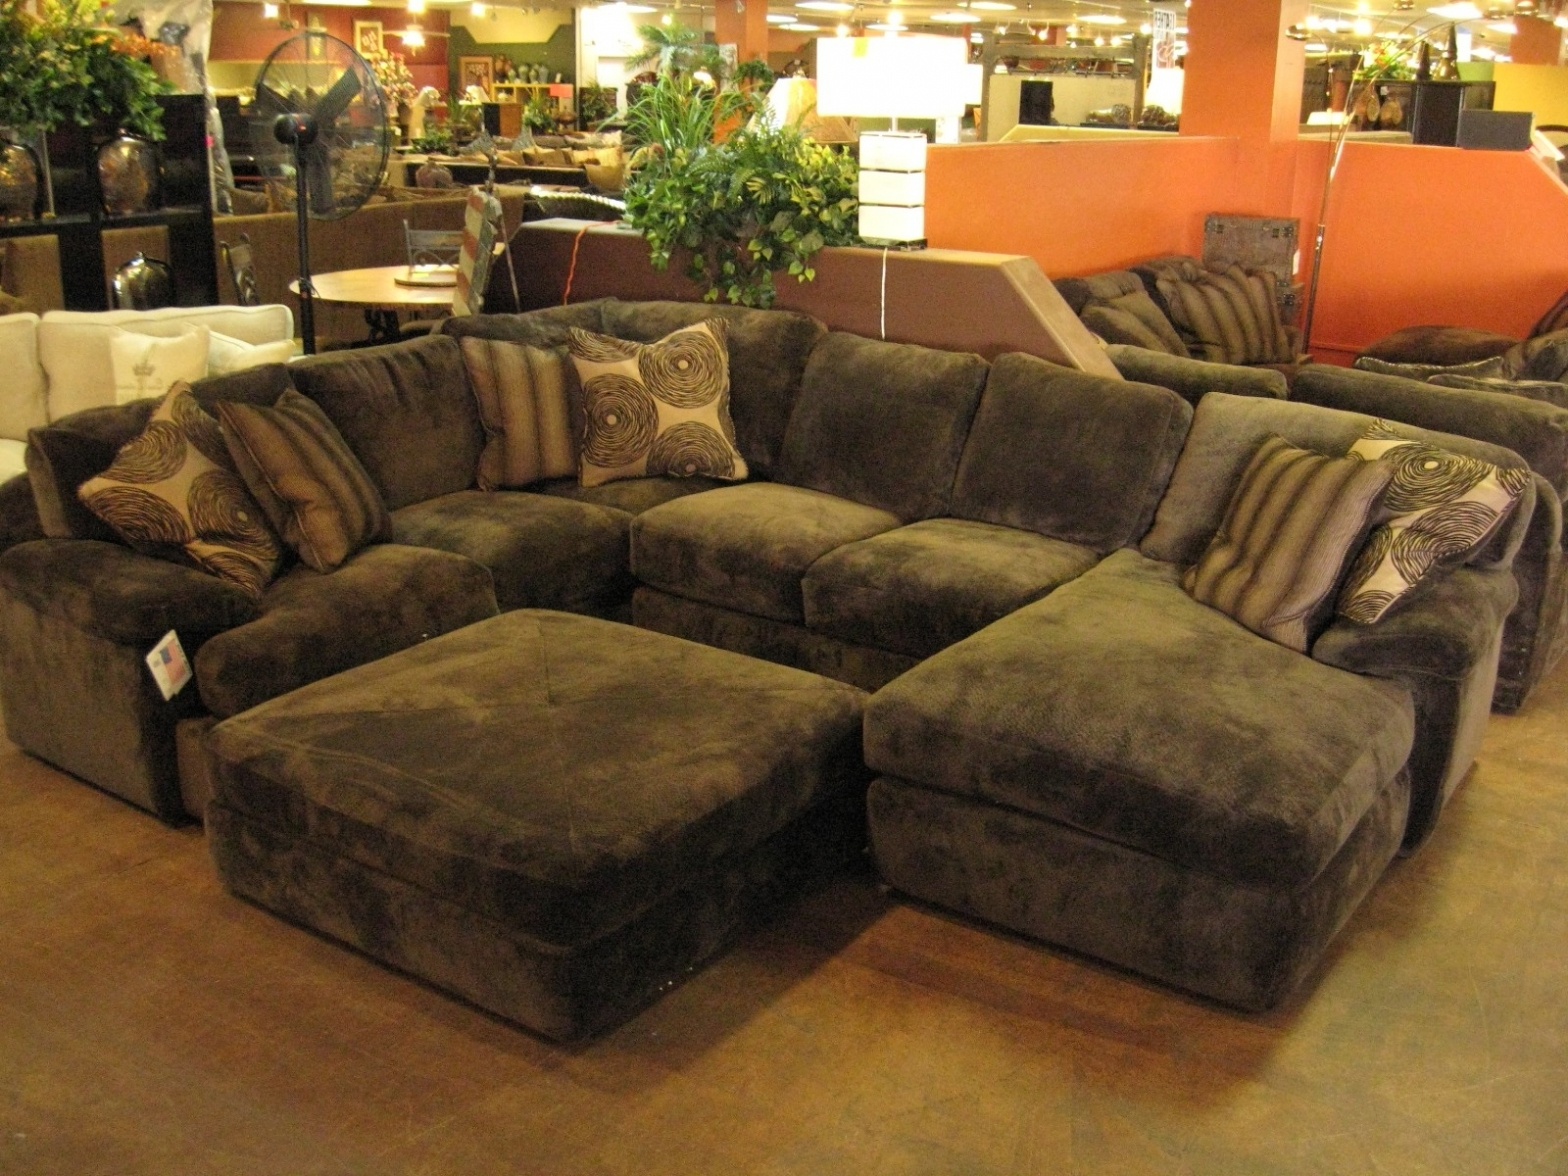 Furniture: Awesome Amazon Sectional Sofas 77 On The Brick Intended For Well Liked Sectional Sofas At Amazon (View 7 of 20)